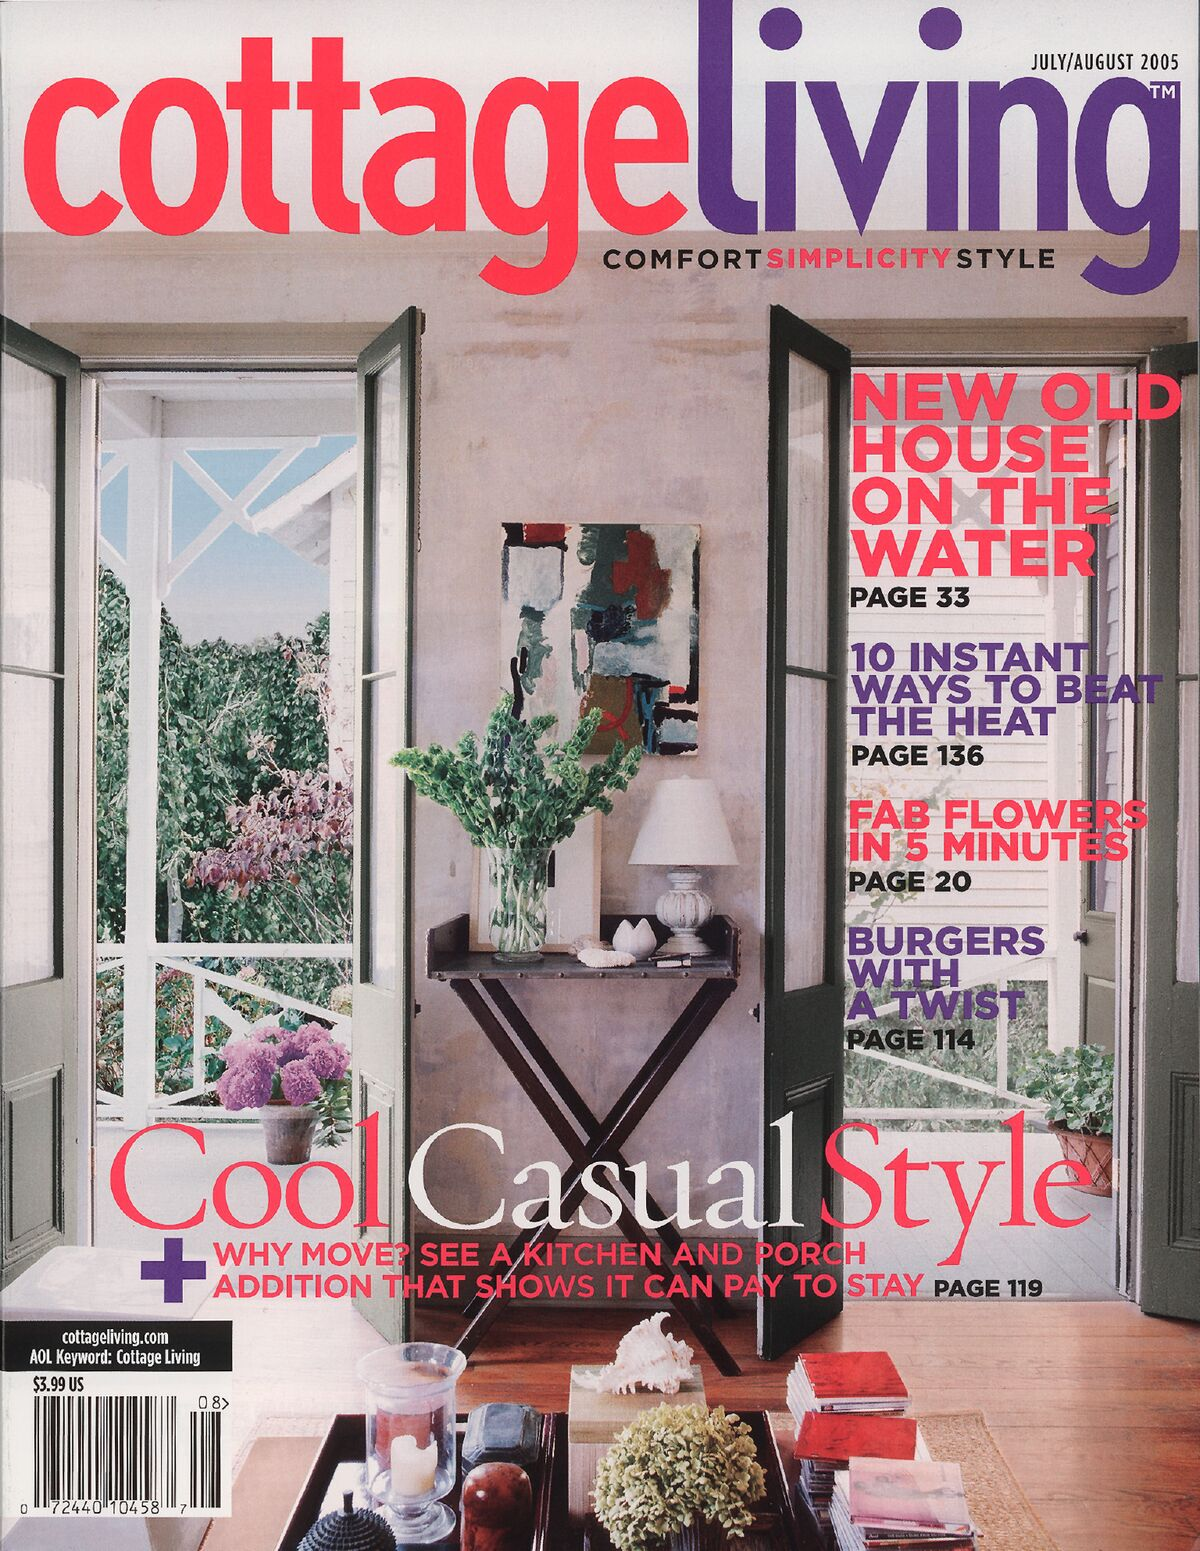 Hidden Potential - Published in Cottage Living, August 2005